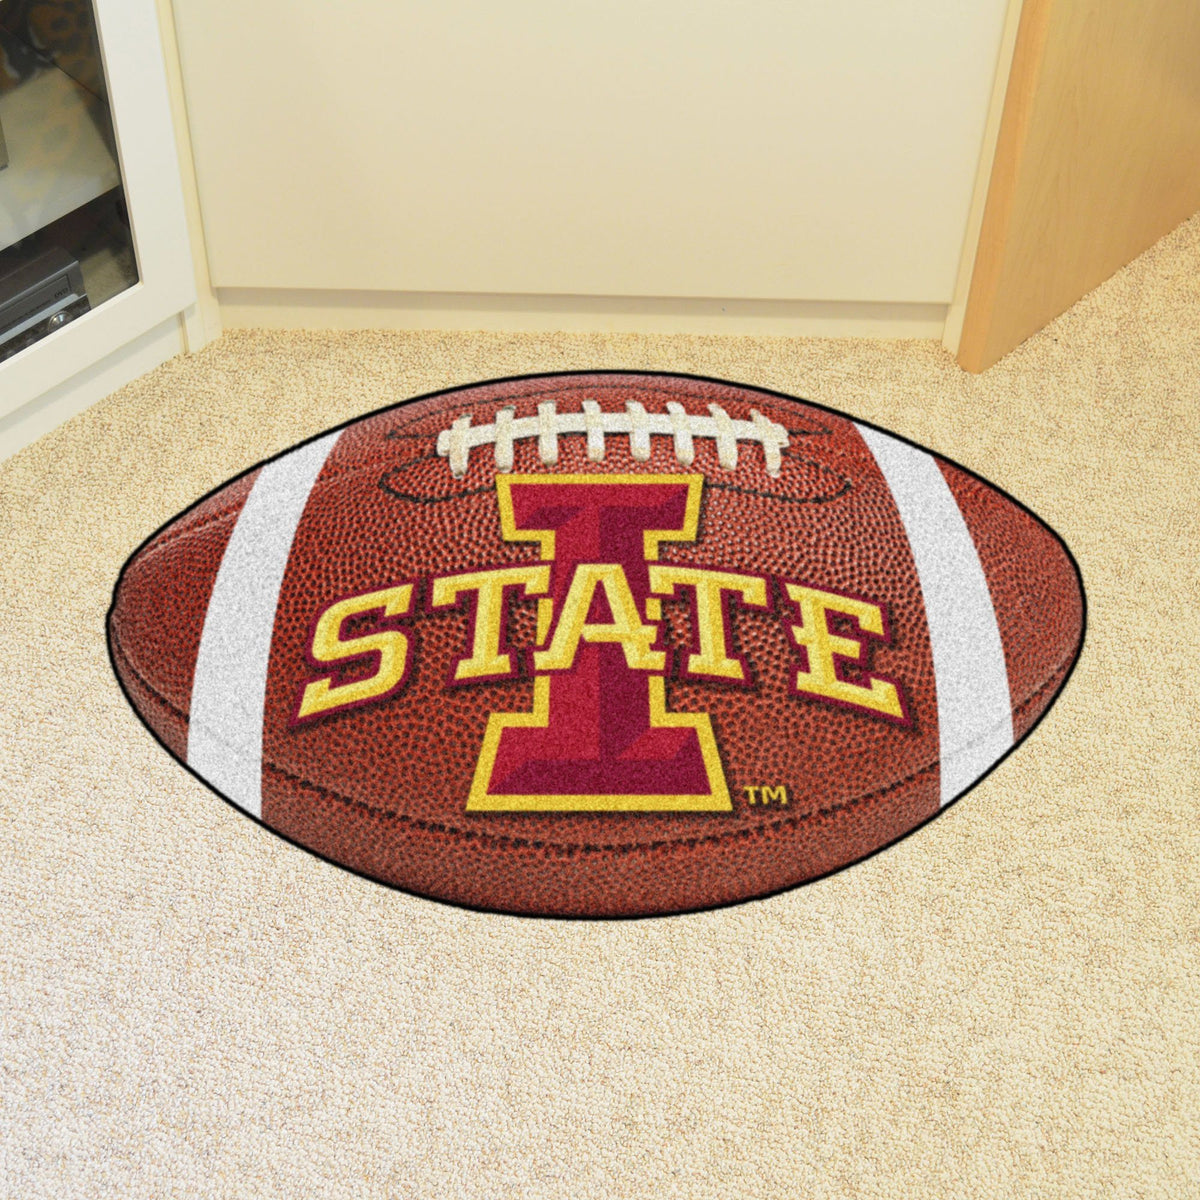 Collegiate - Football Mat: A - K Collegiate Mats, Rectangular Mats, Football Mat, Collegiate, Home Fan Mats Iowa State